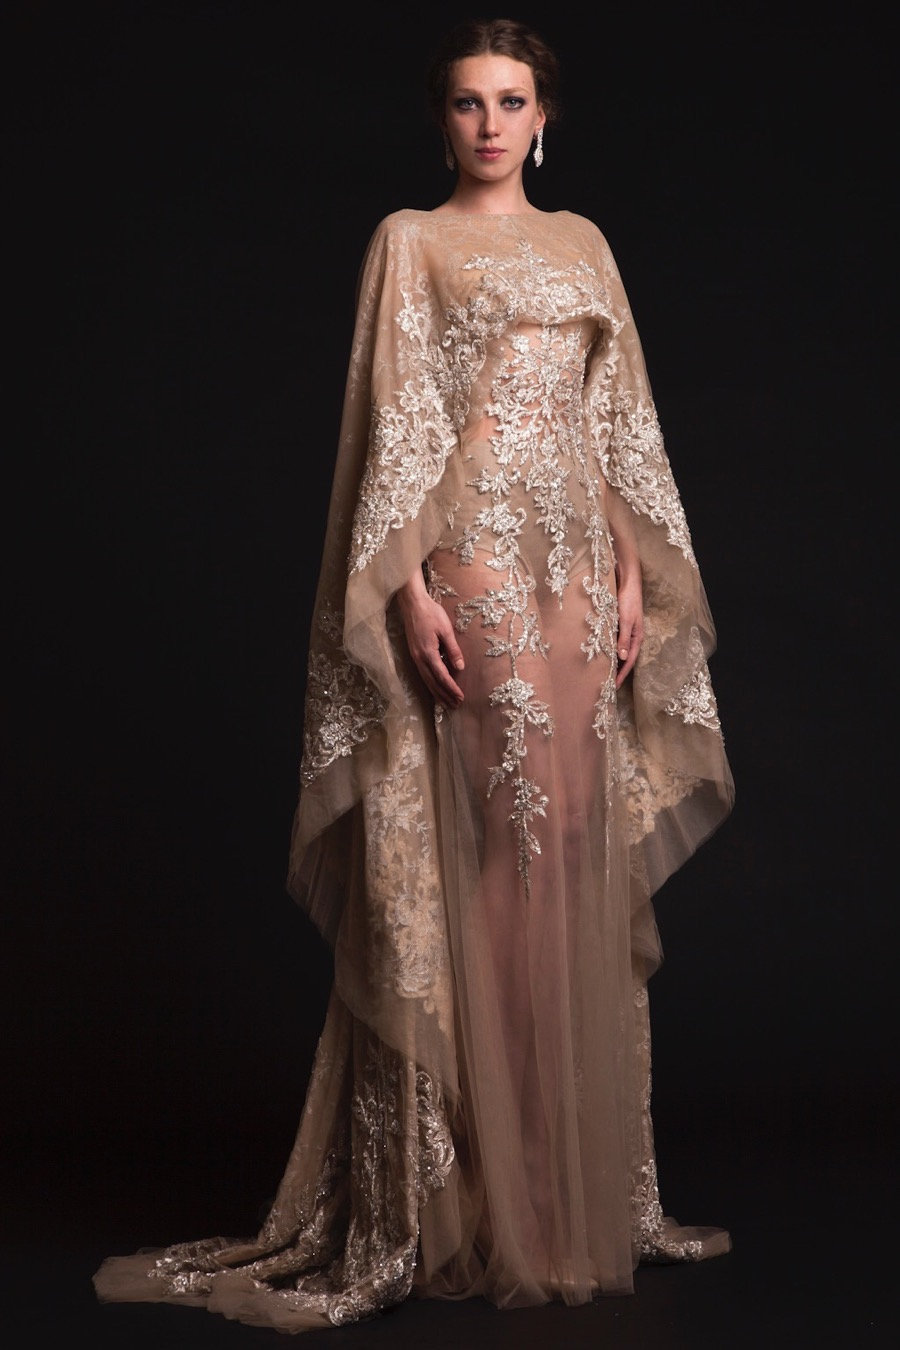 The Last Spring by Krikor Jabotian | 2015 - Perfete #gorgeousgowns